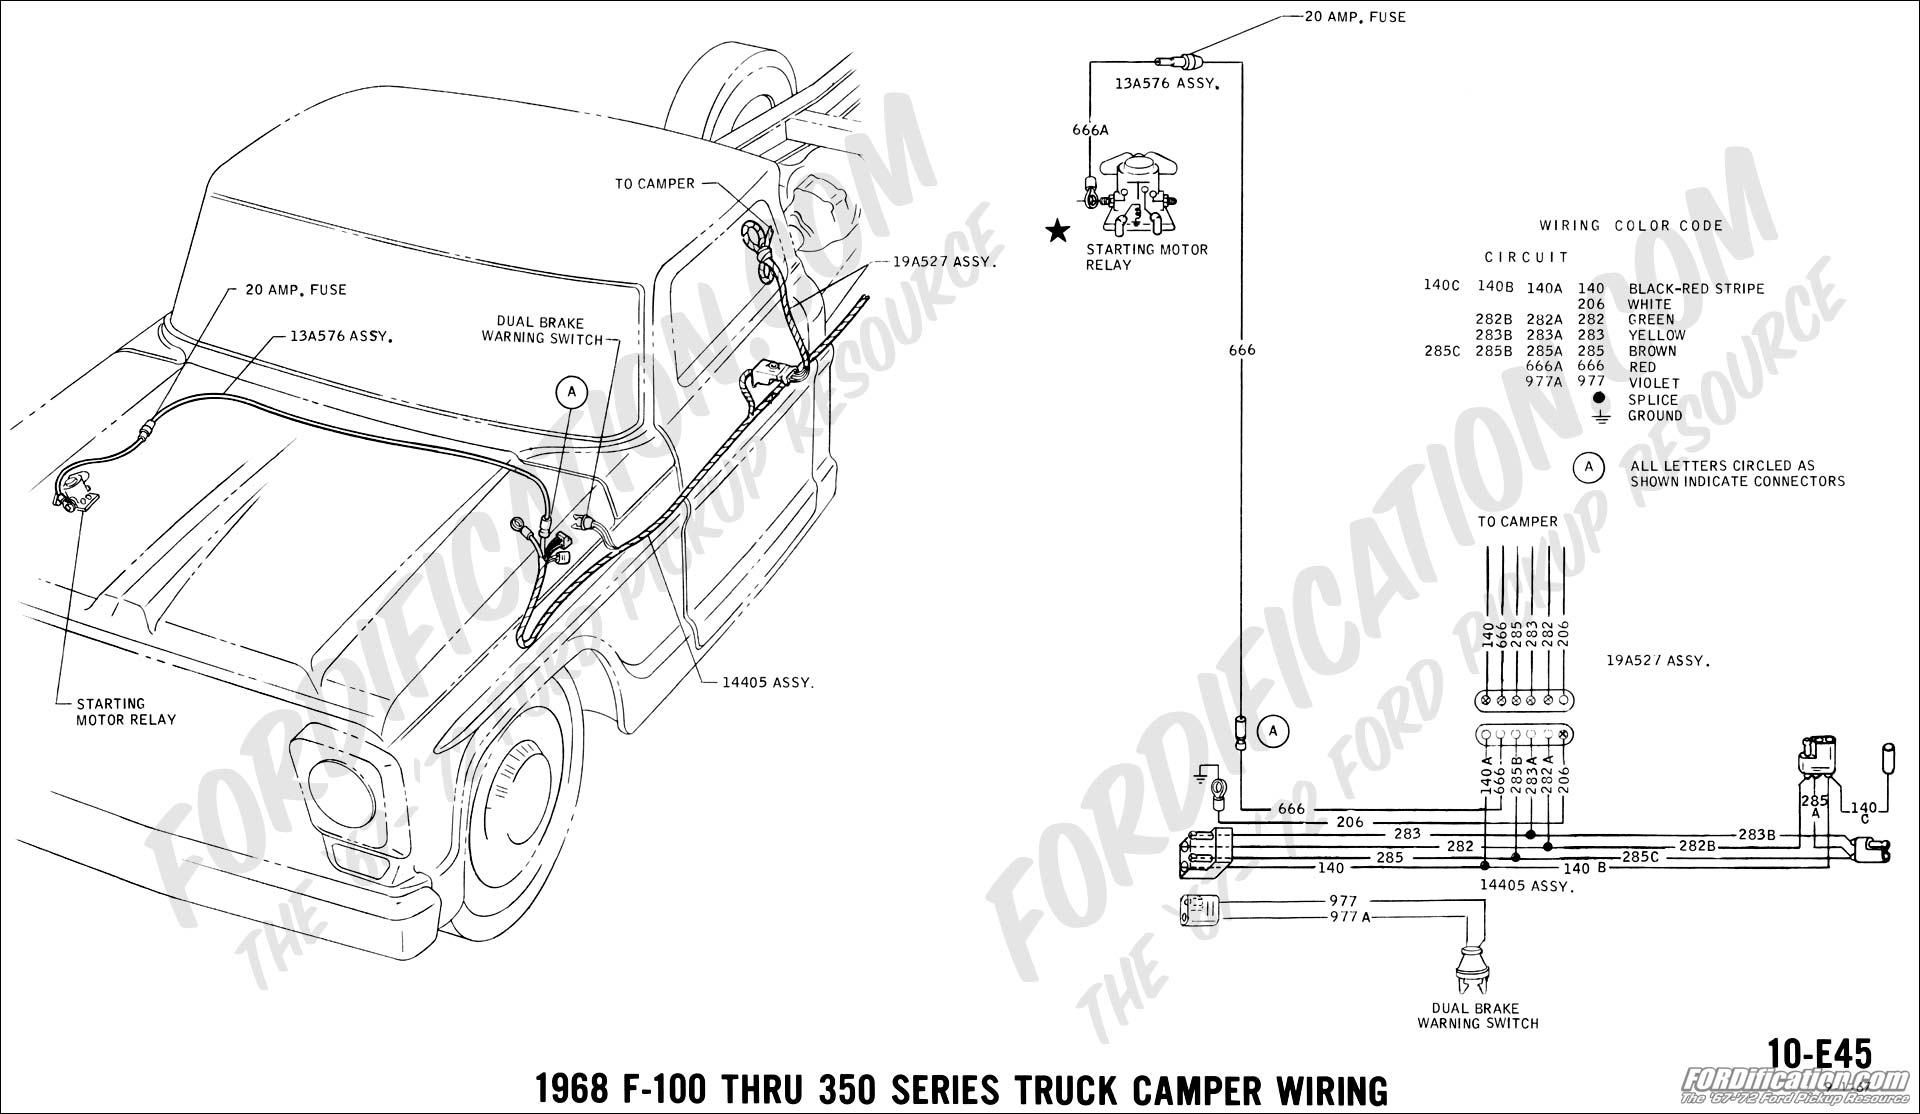 68 47 ford truck technical drawings and schematics section h wiring truck camper wire harness at gsmportal.co